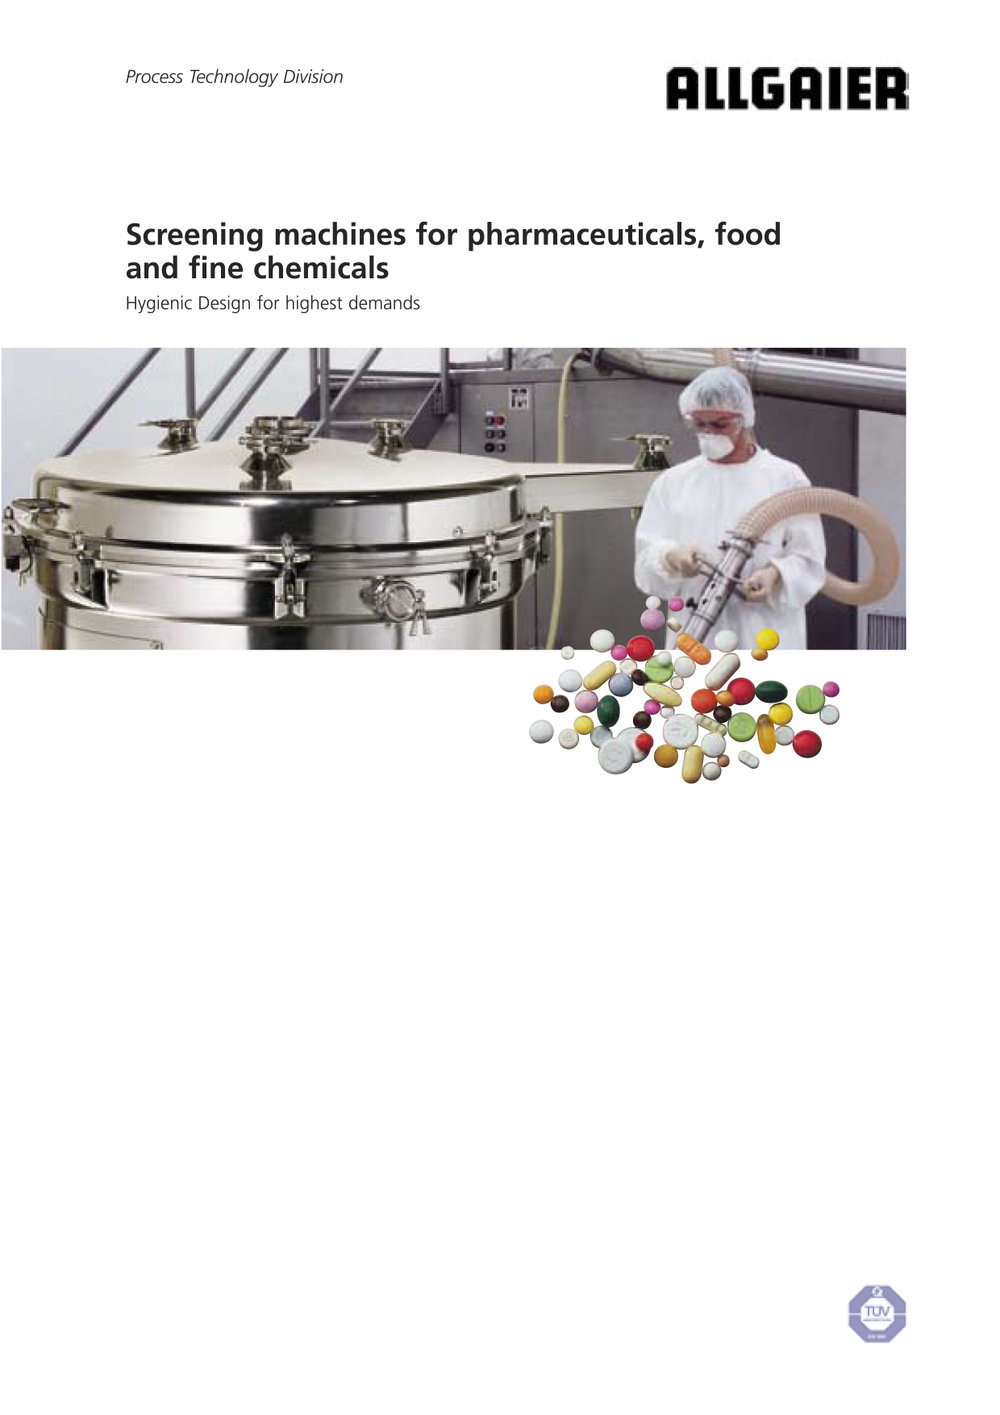 Screening machines for pharmaceuticals, food, and fine chemicals